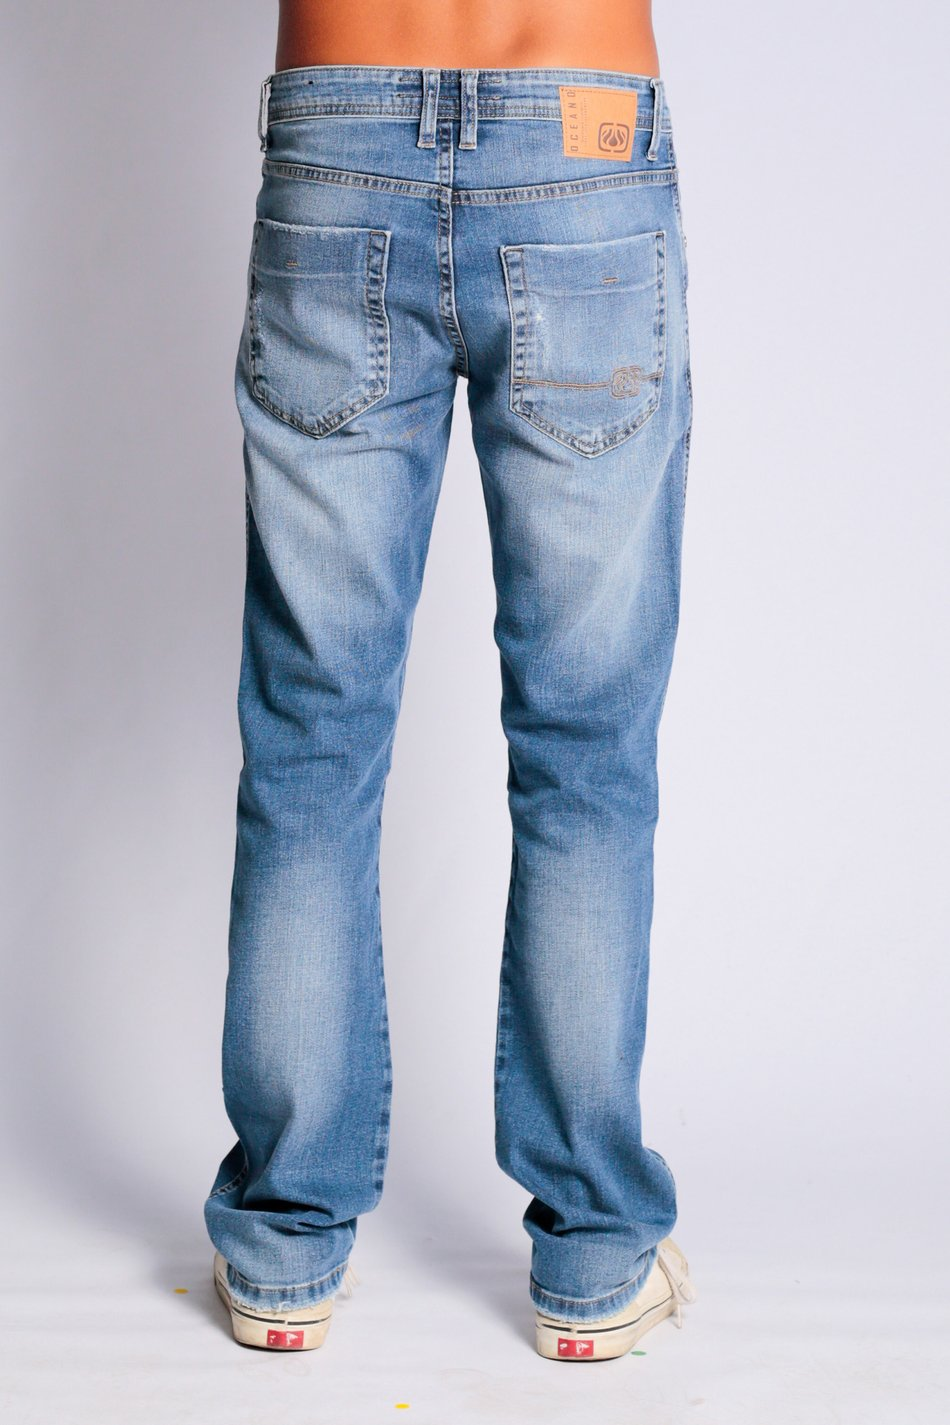 CALÇA OCEANO SLIM JEANS INTENSITA